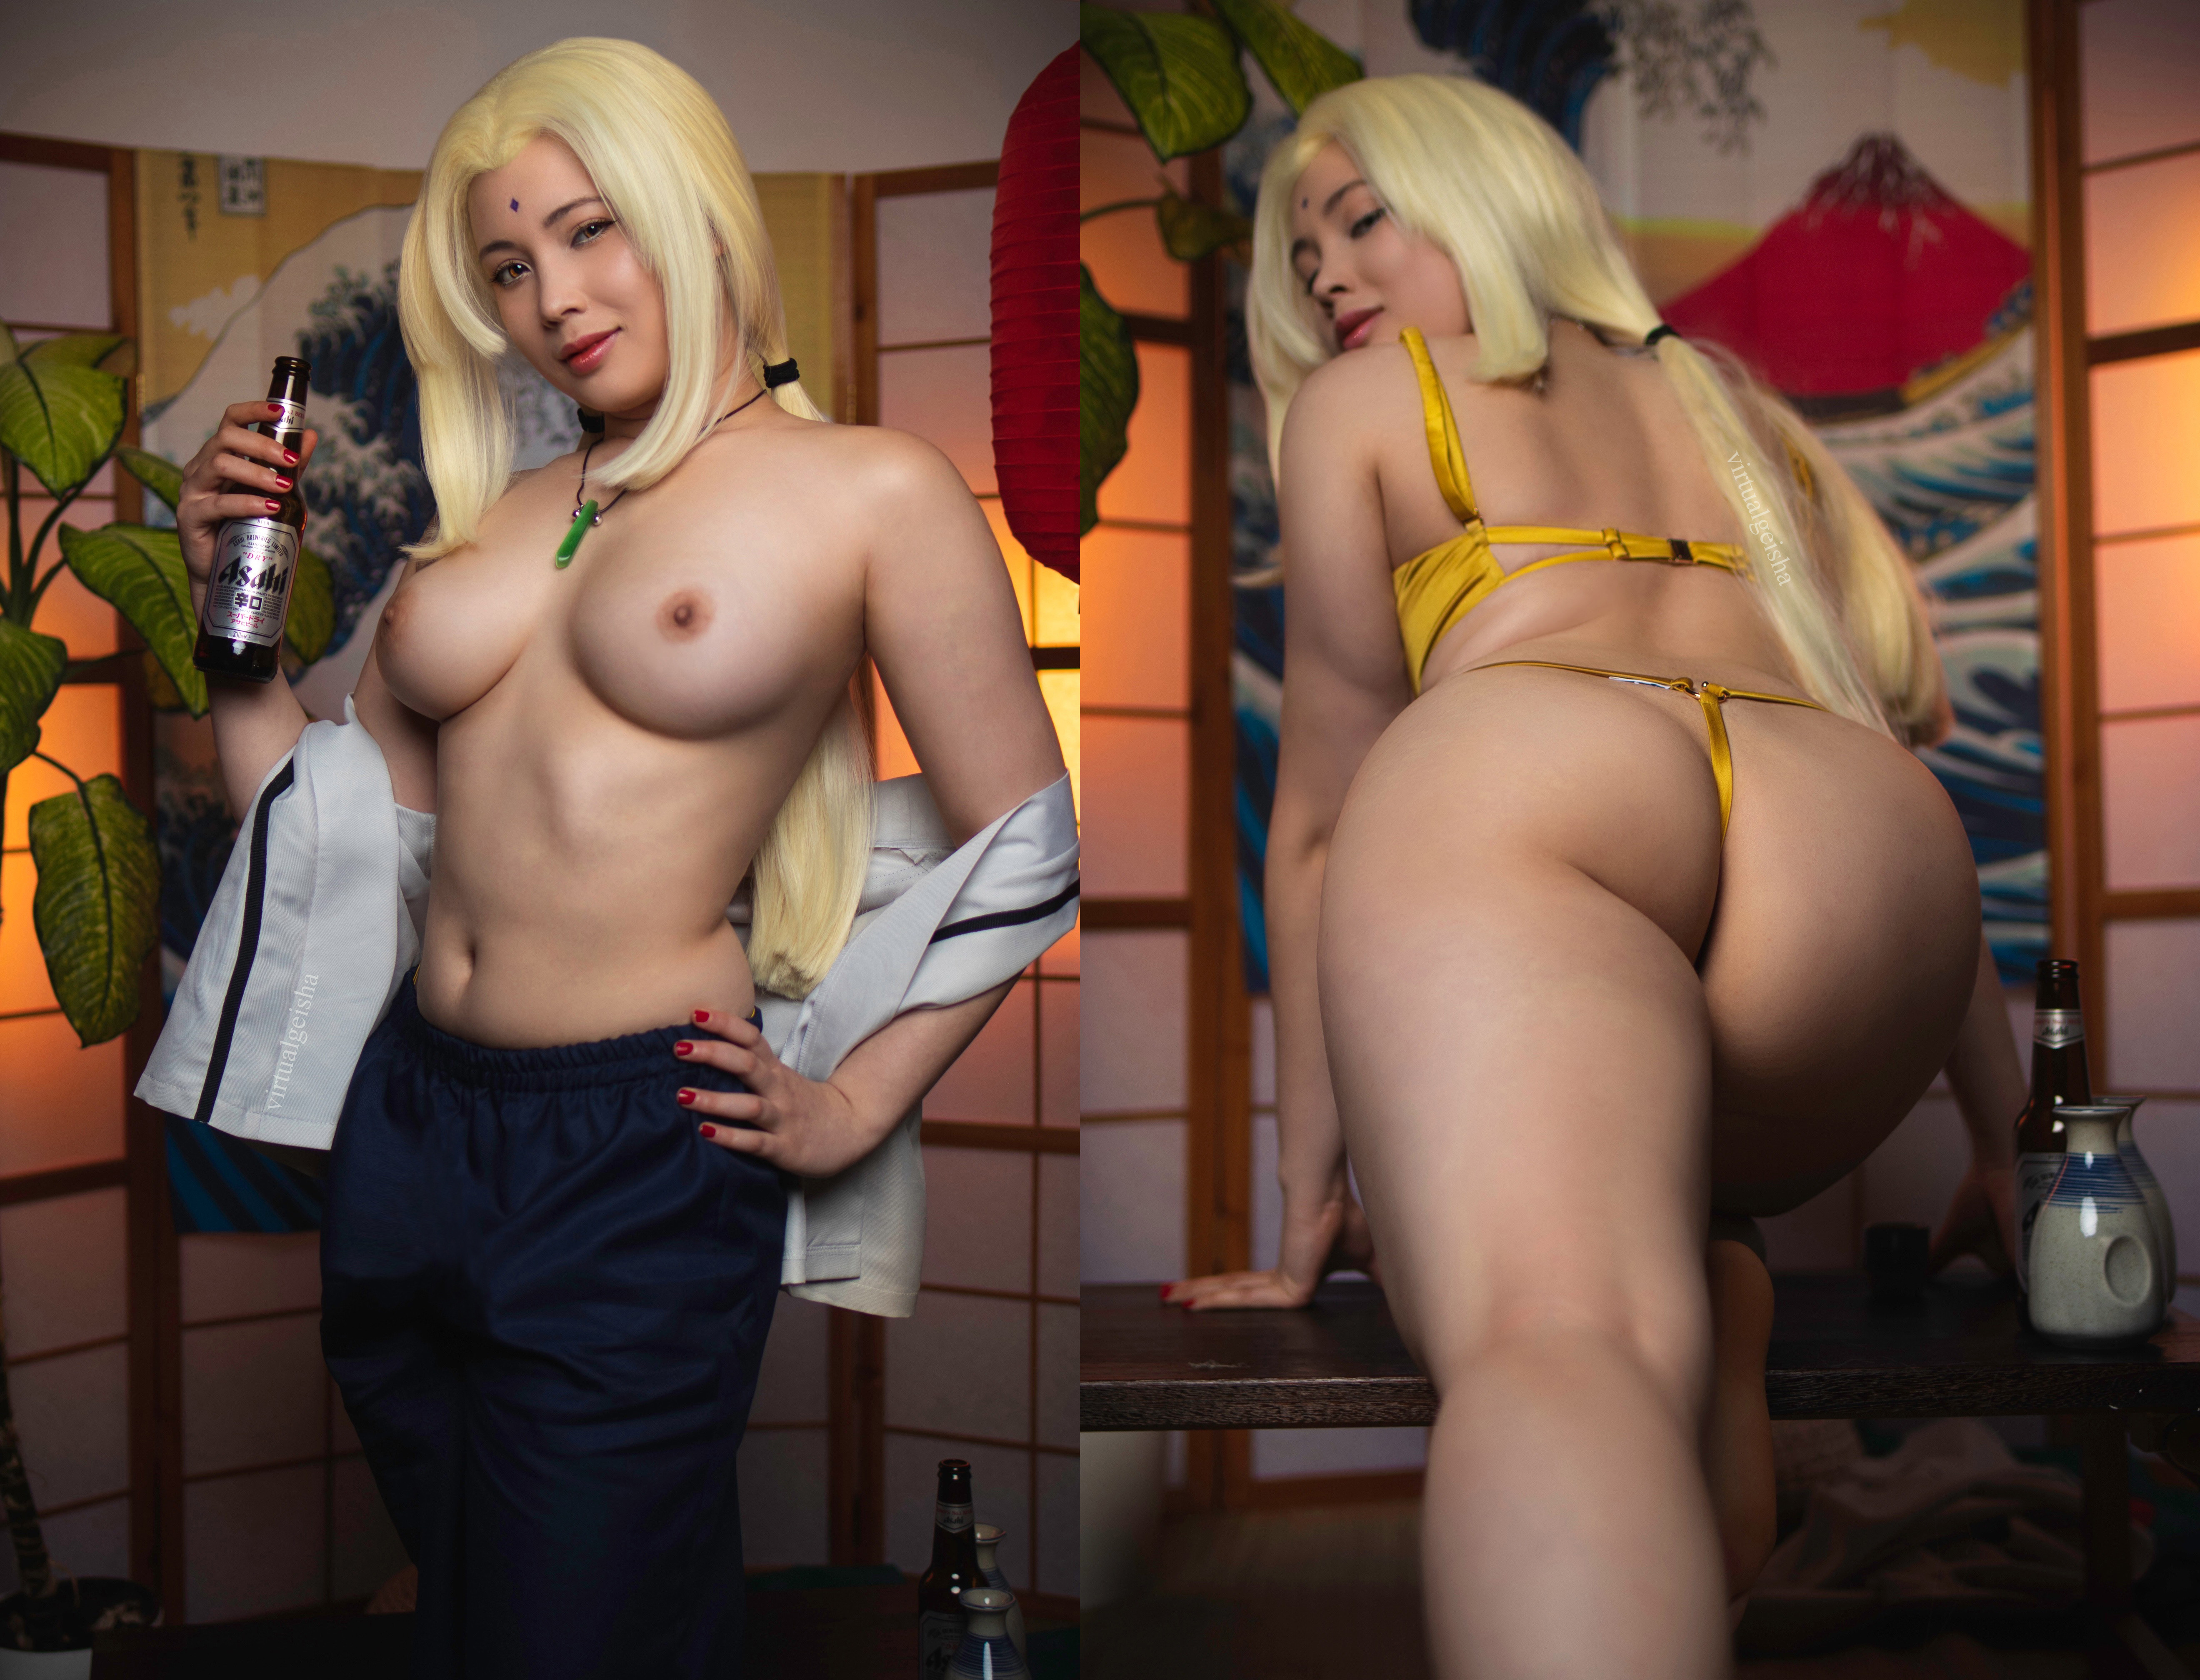 One of our naked asian pics called Would you share a drink with Tsunade?